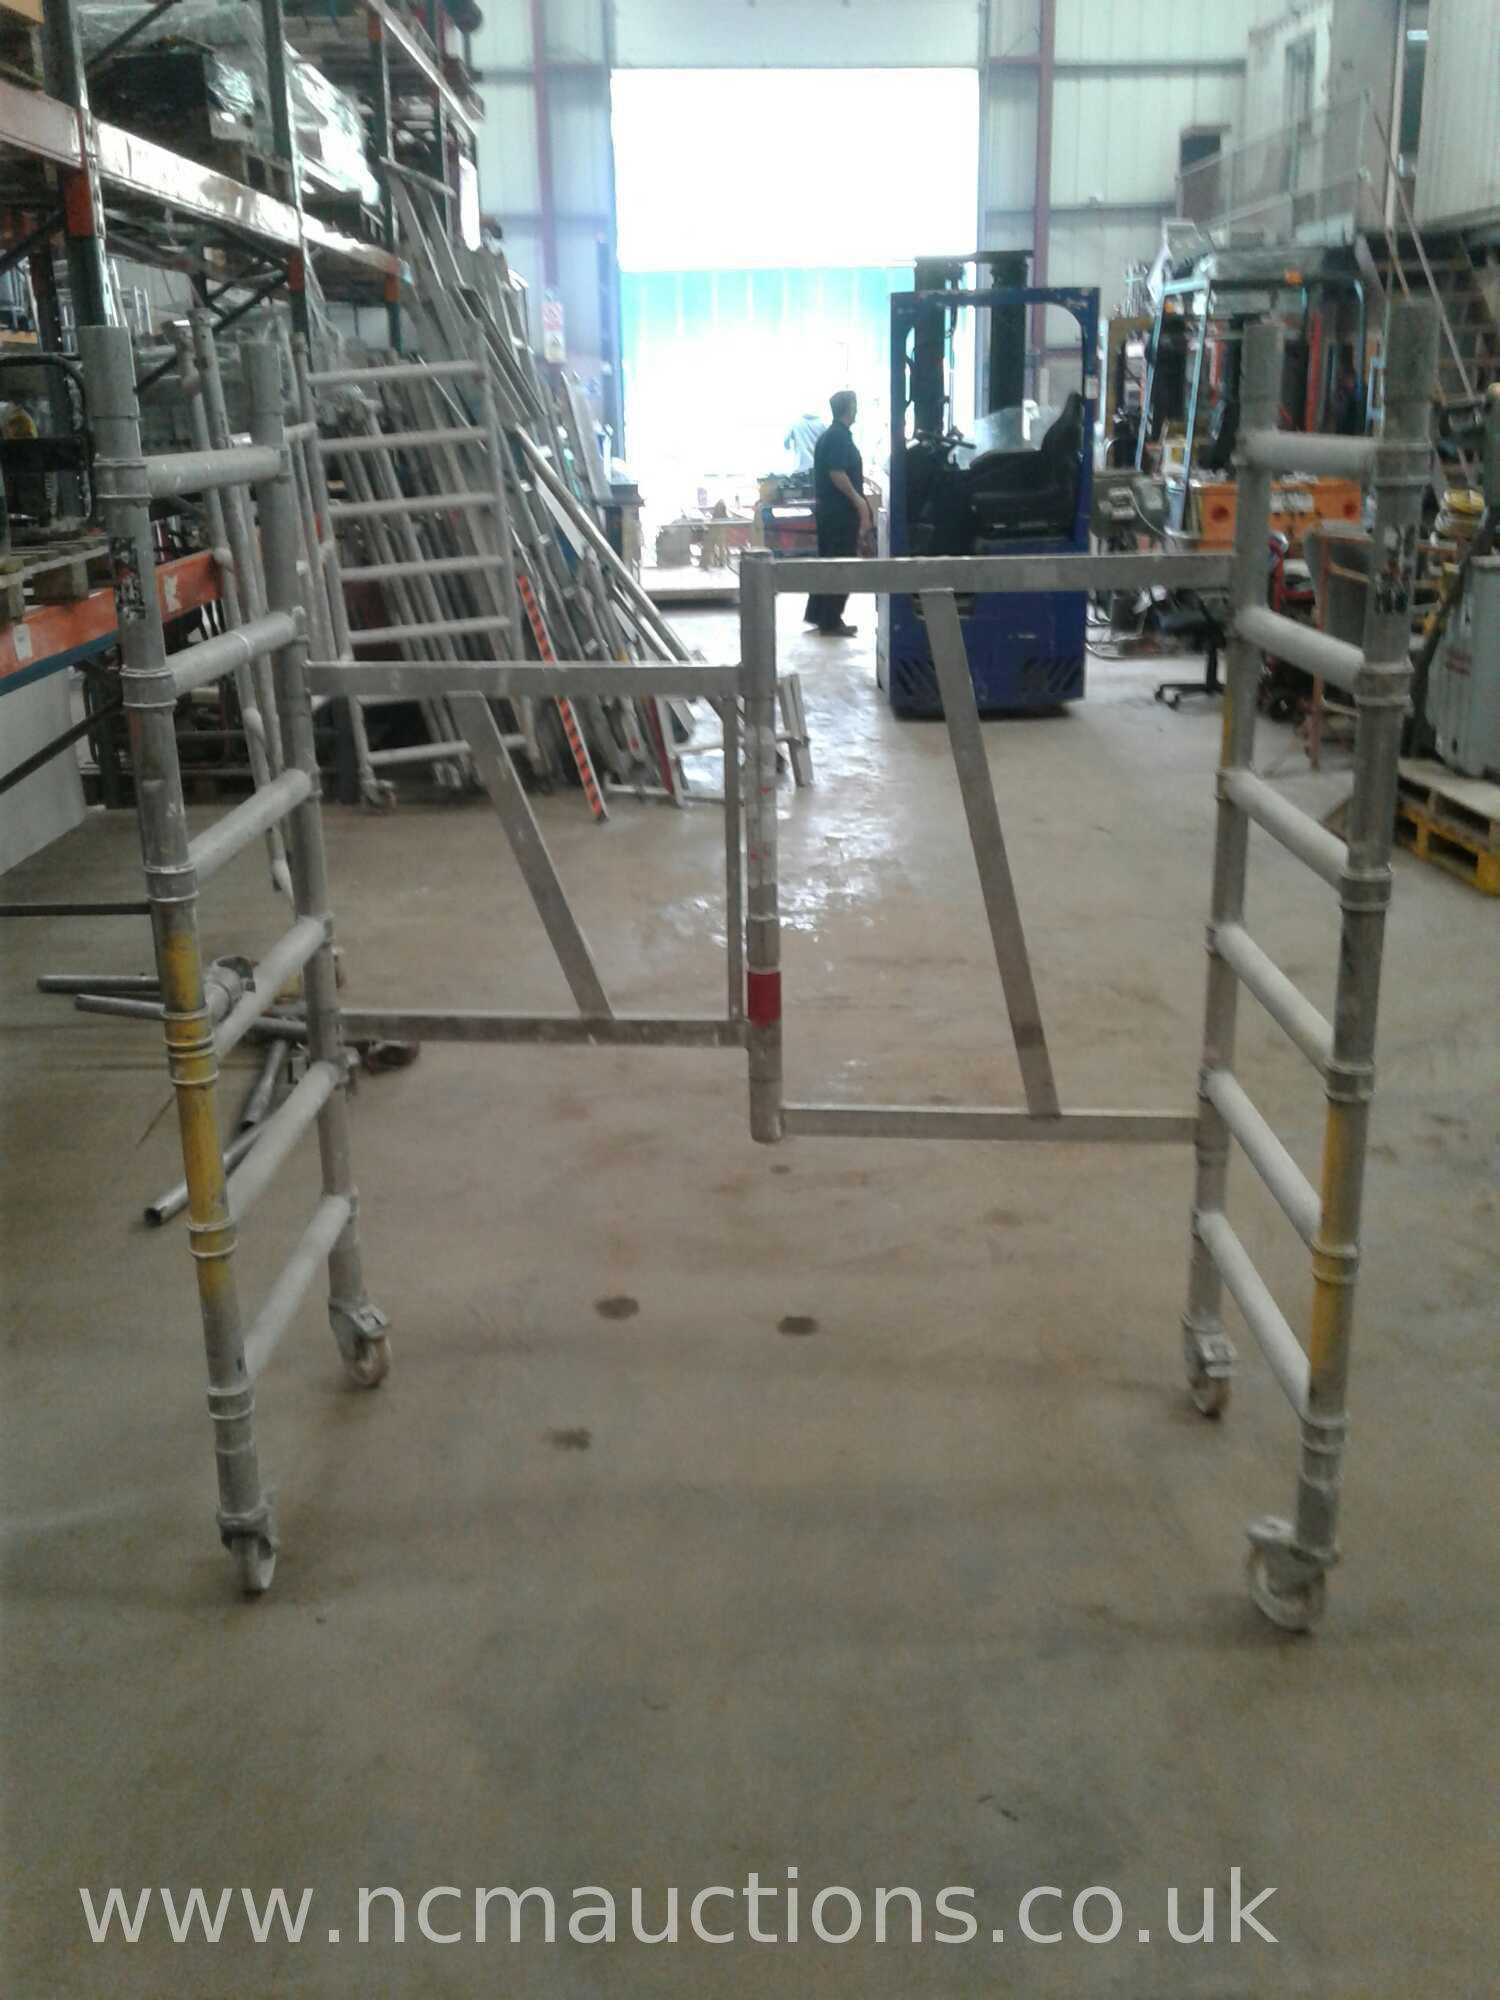 Lot 366 - 1M indoor scaffold tower